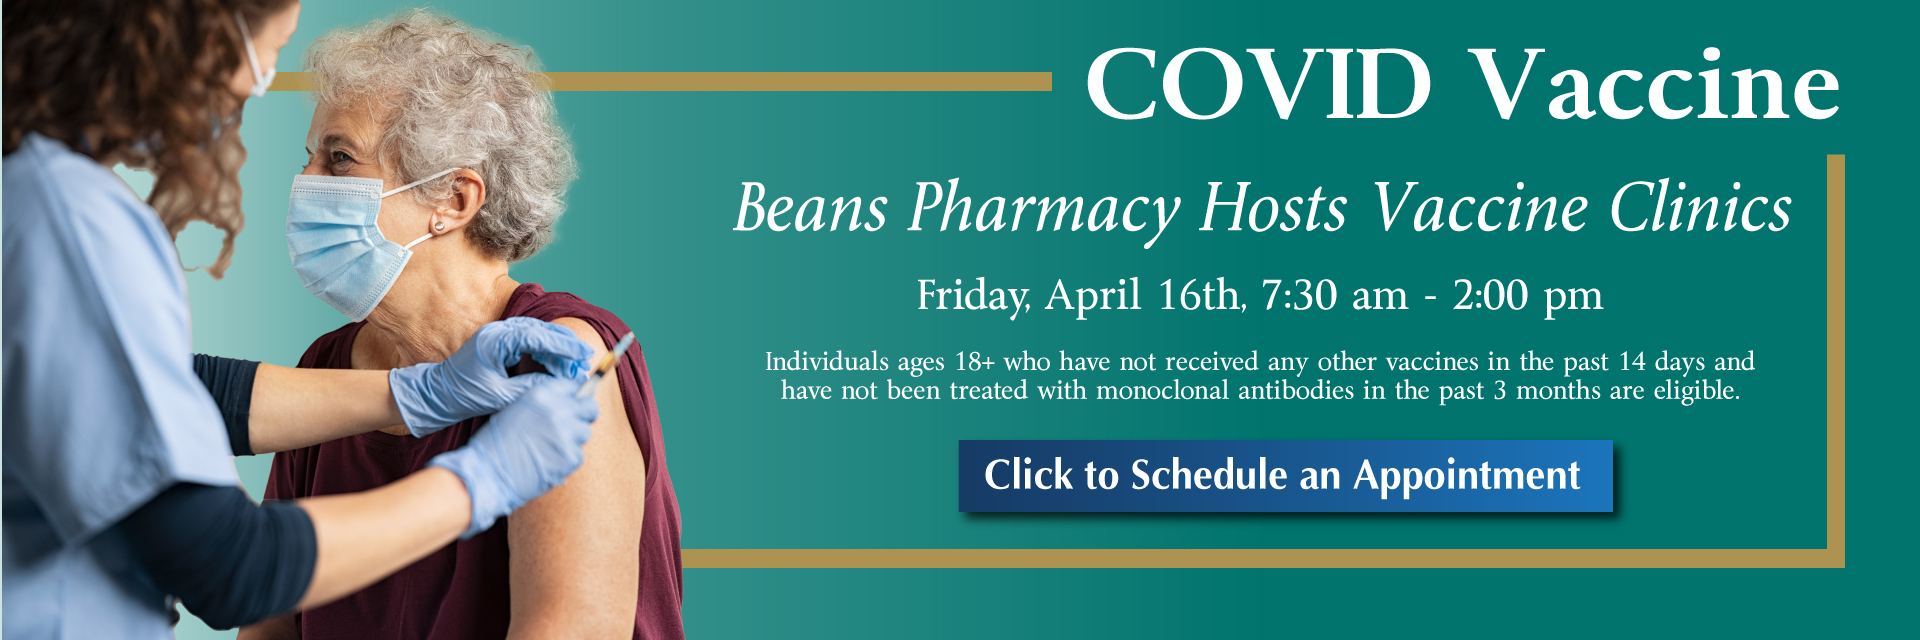 Sign up online to recieve a Moderna COVID Vaccine at WCHC.